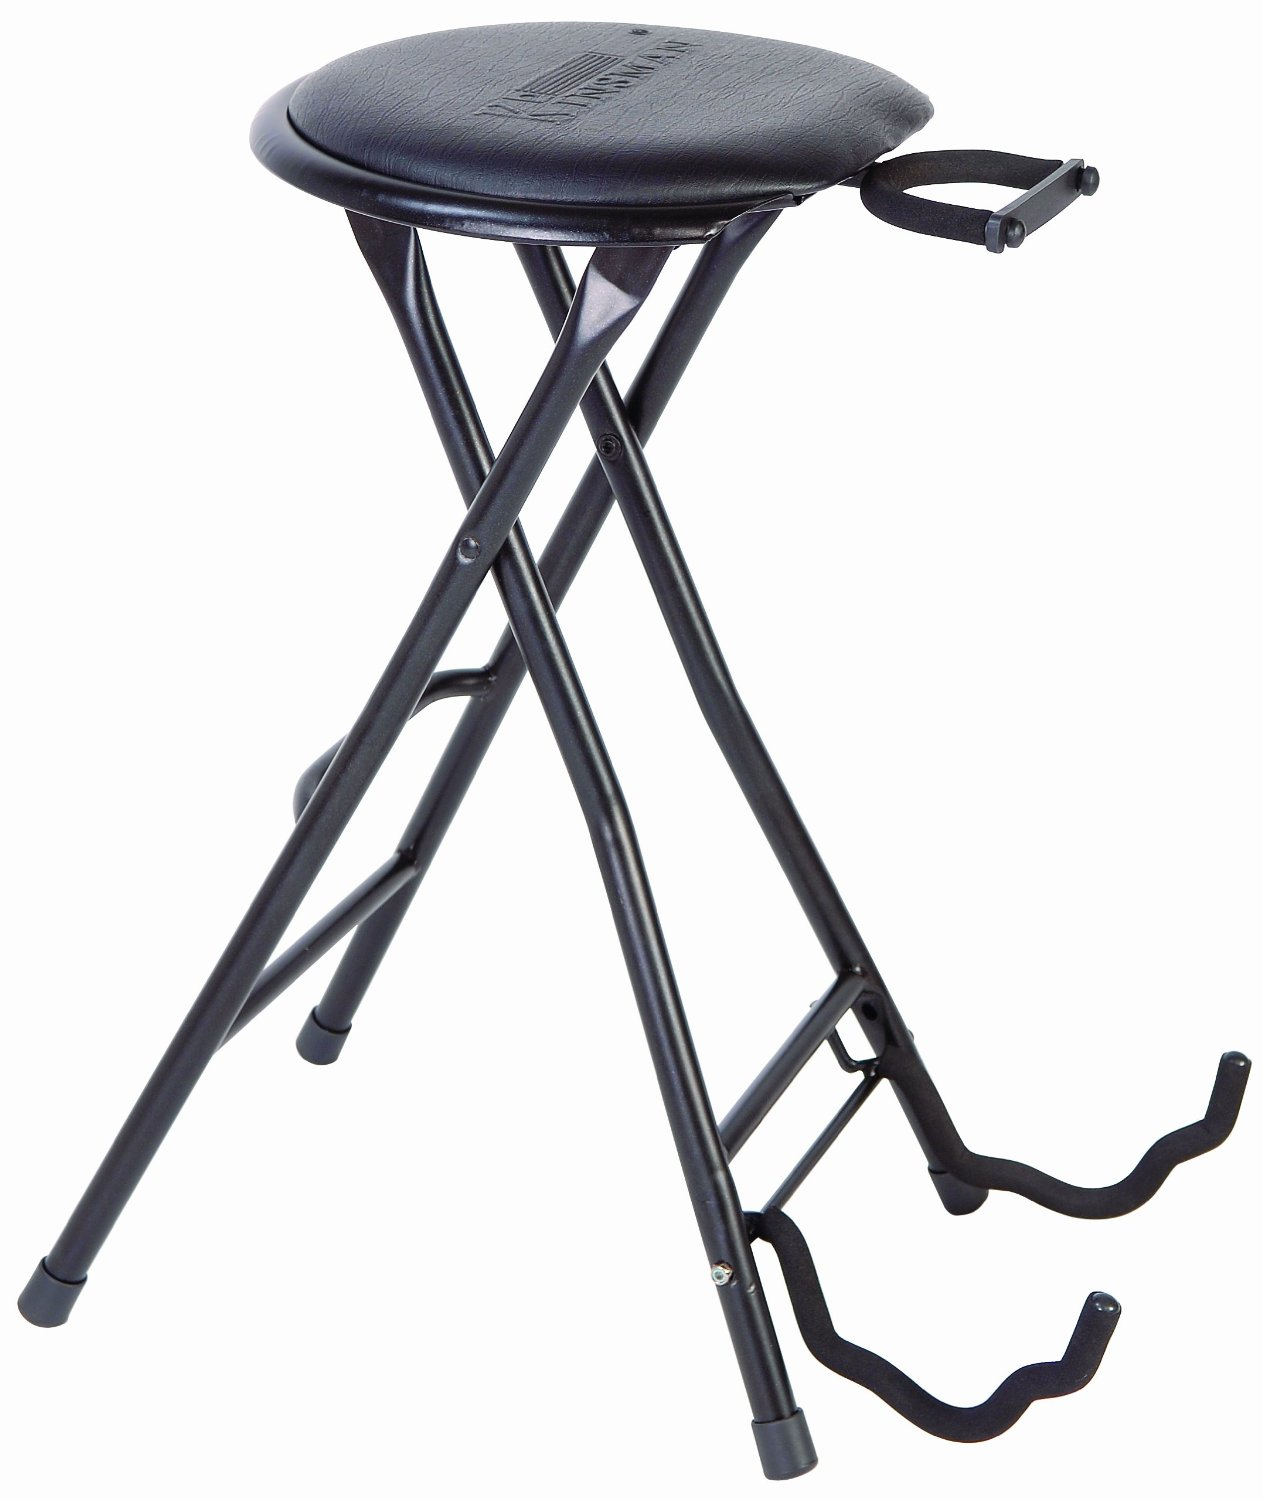 Swell Guitarists Dual Stool Combination Instrument Stand And Stool Squirreltailoven Fun Painted Chair Ideas Images Squirreltailovenorg